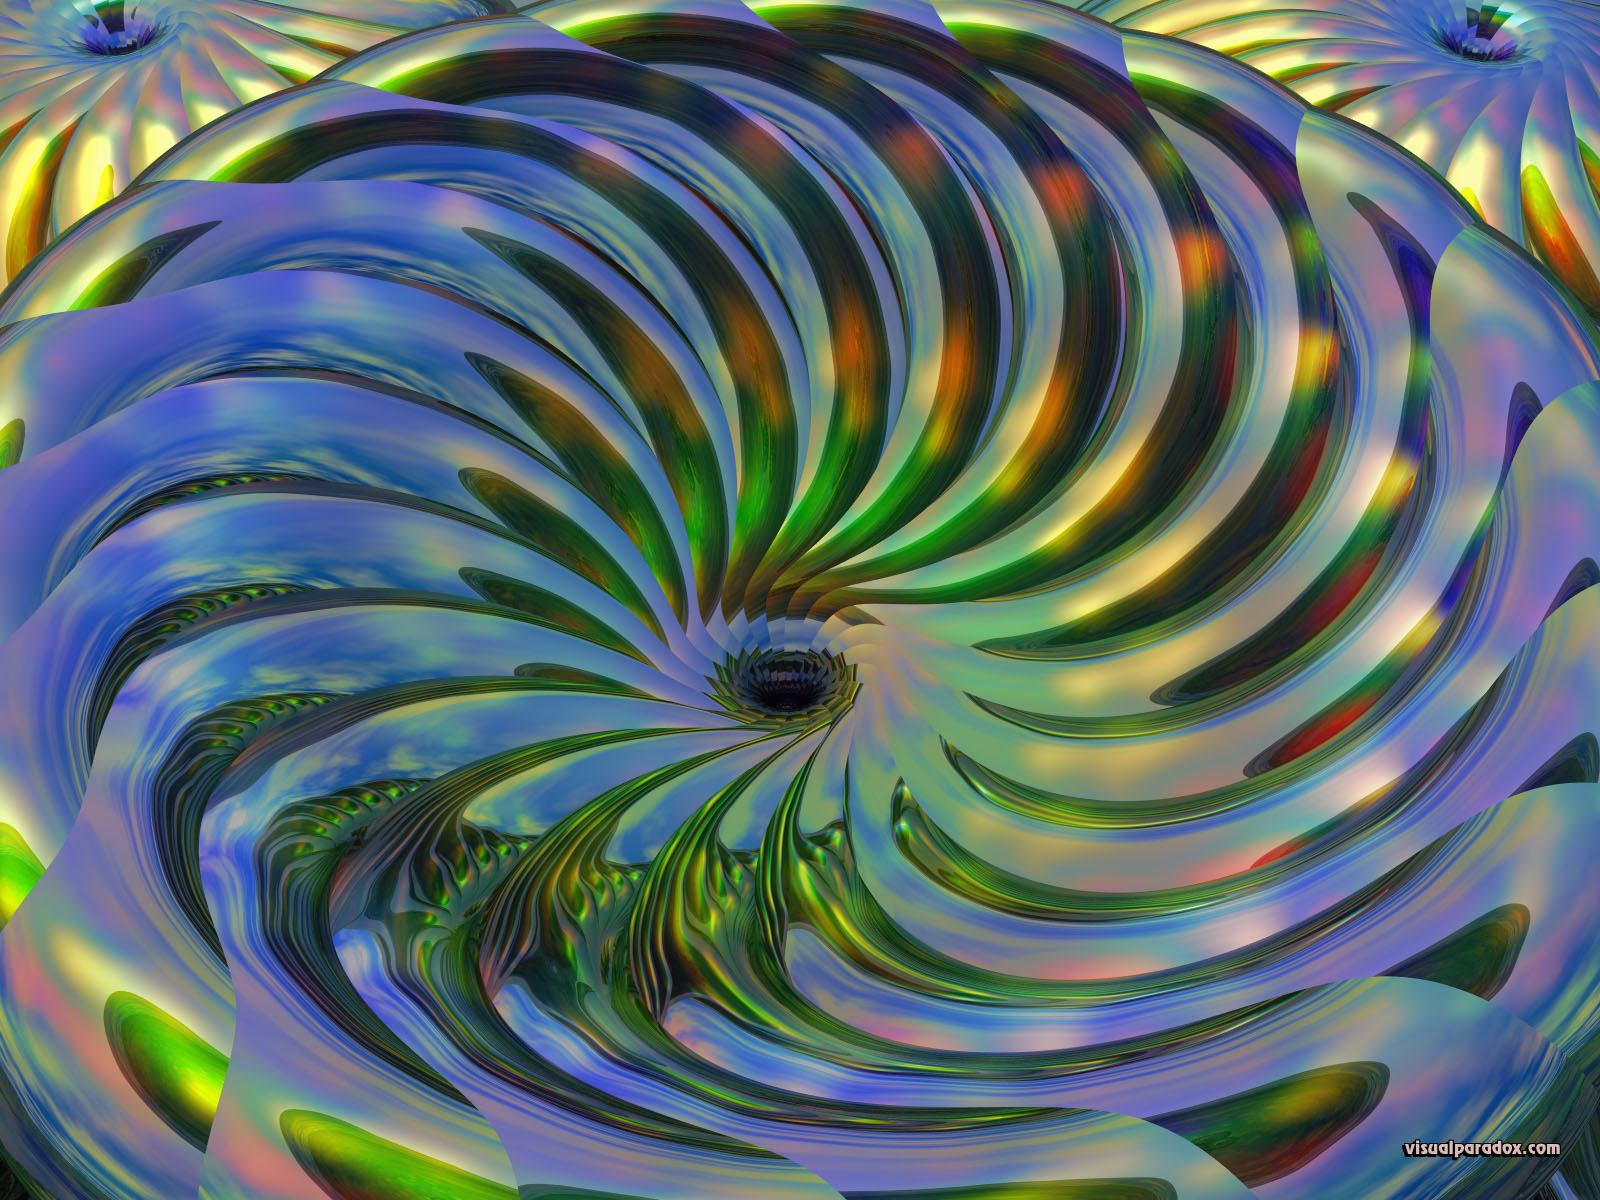 swirl, spin, twist, whirlpool, chrome, funnel, abstract, motion, 3d, wallpaper